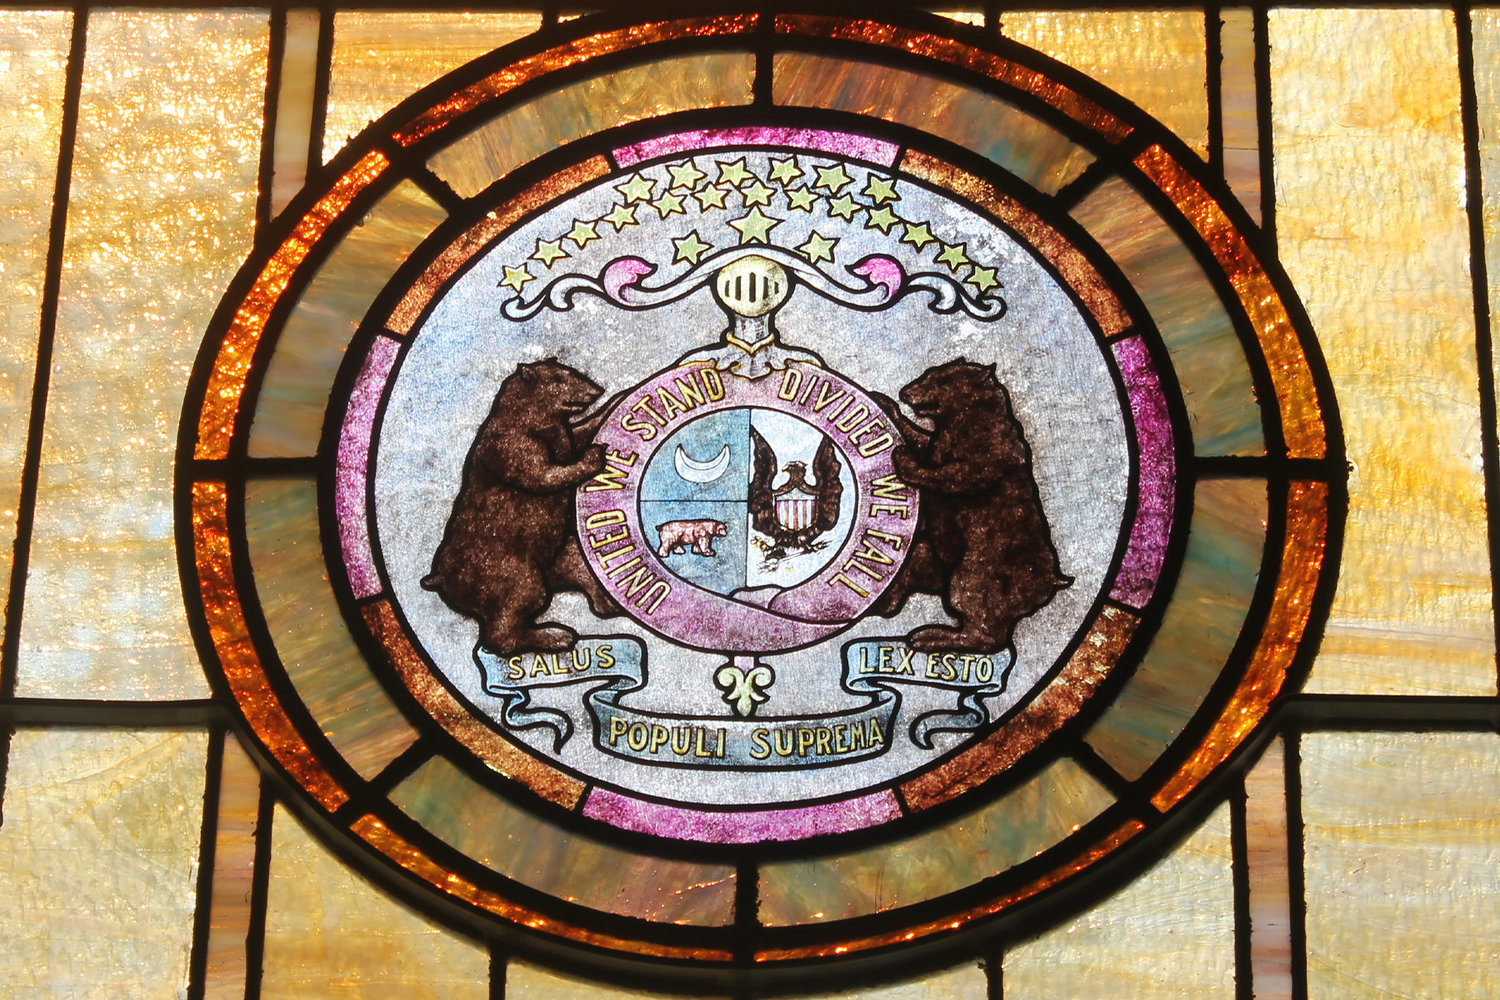 The Great Seal of the State of Missouri is rendered in stained glass in a window in St. Mary parish in Milan.